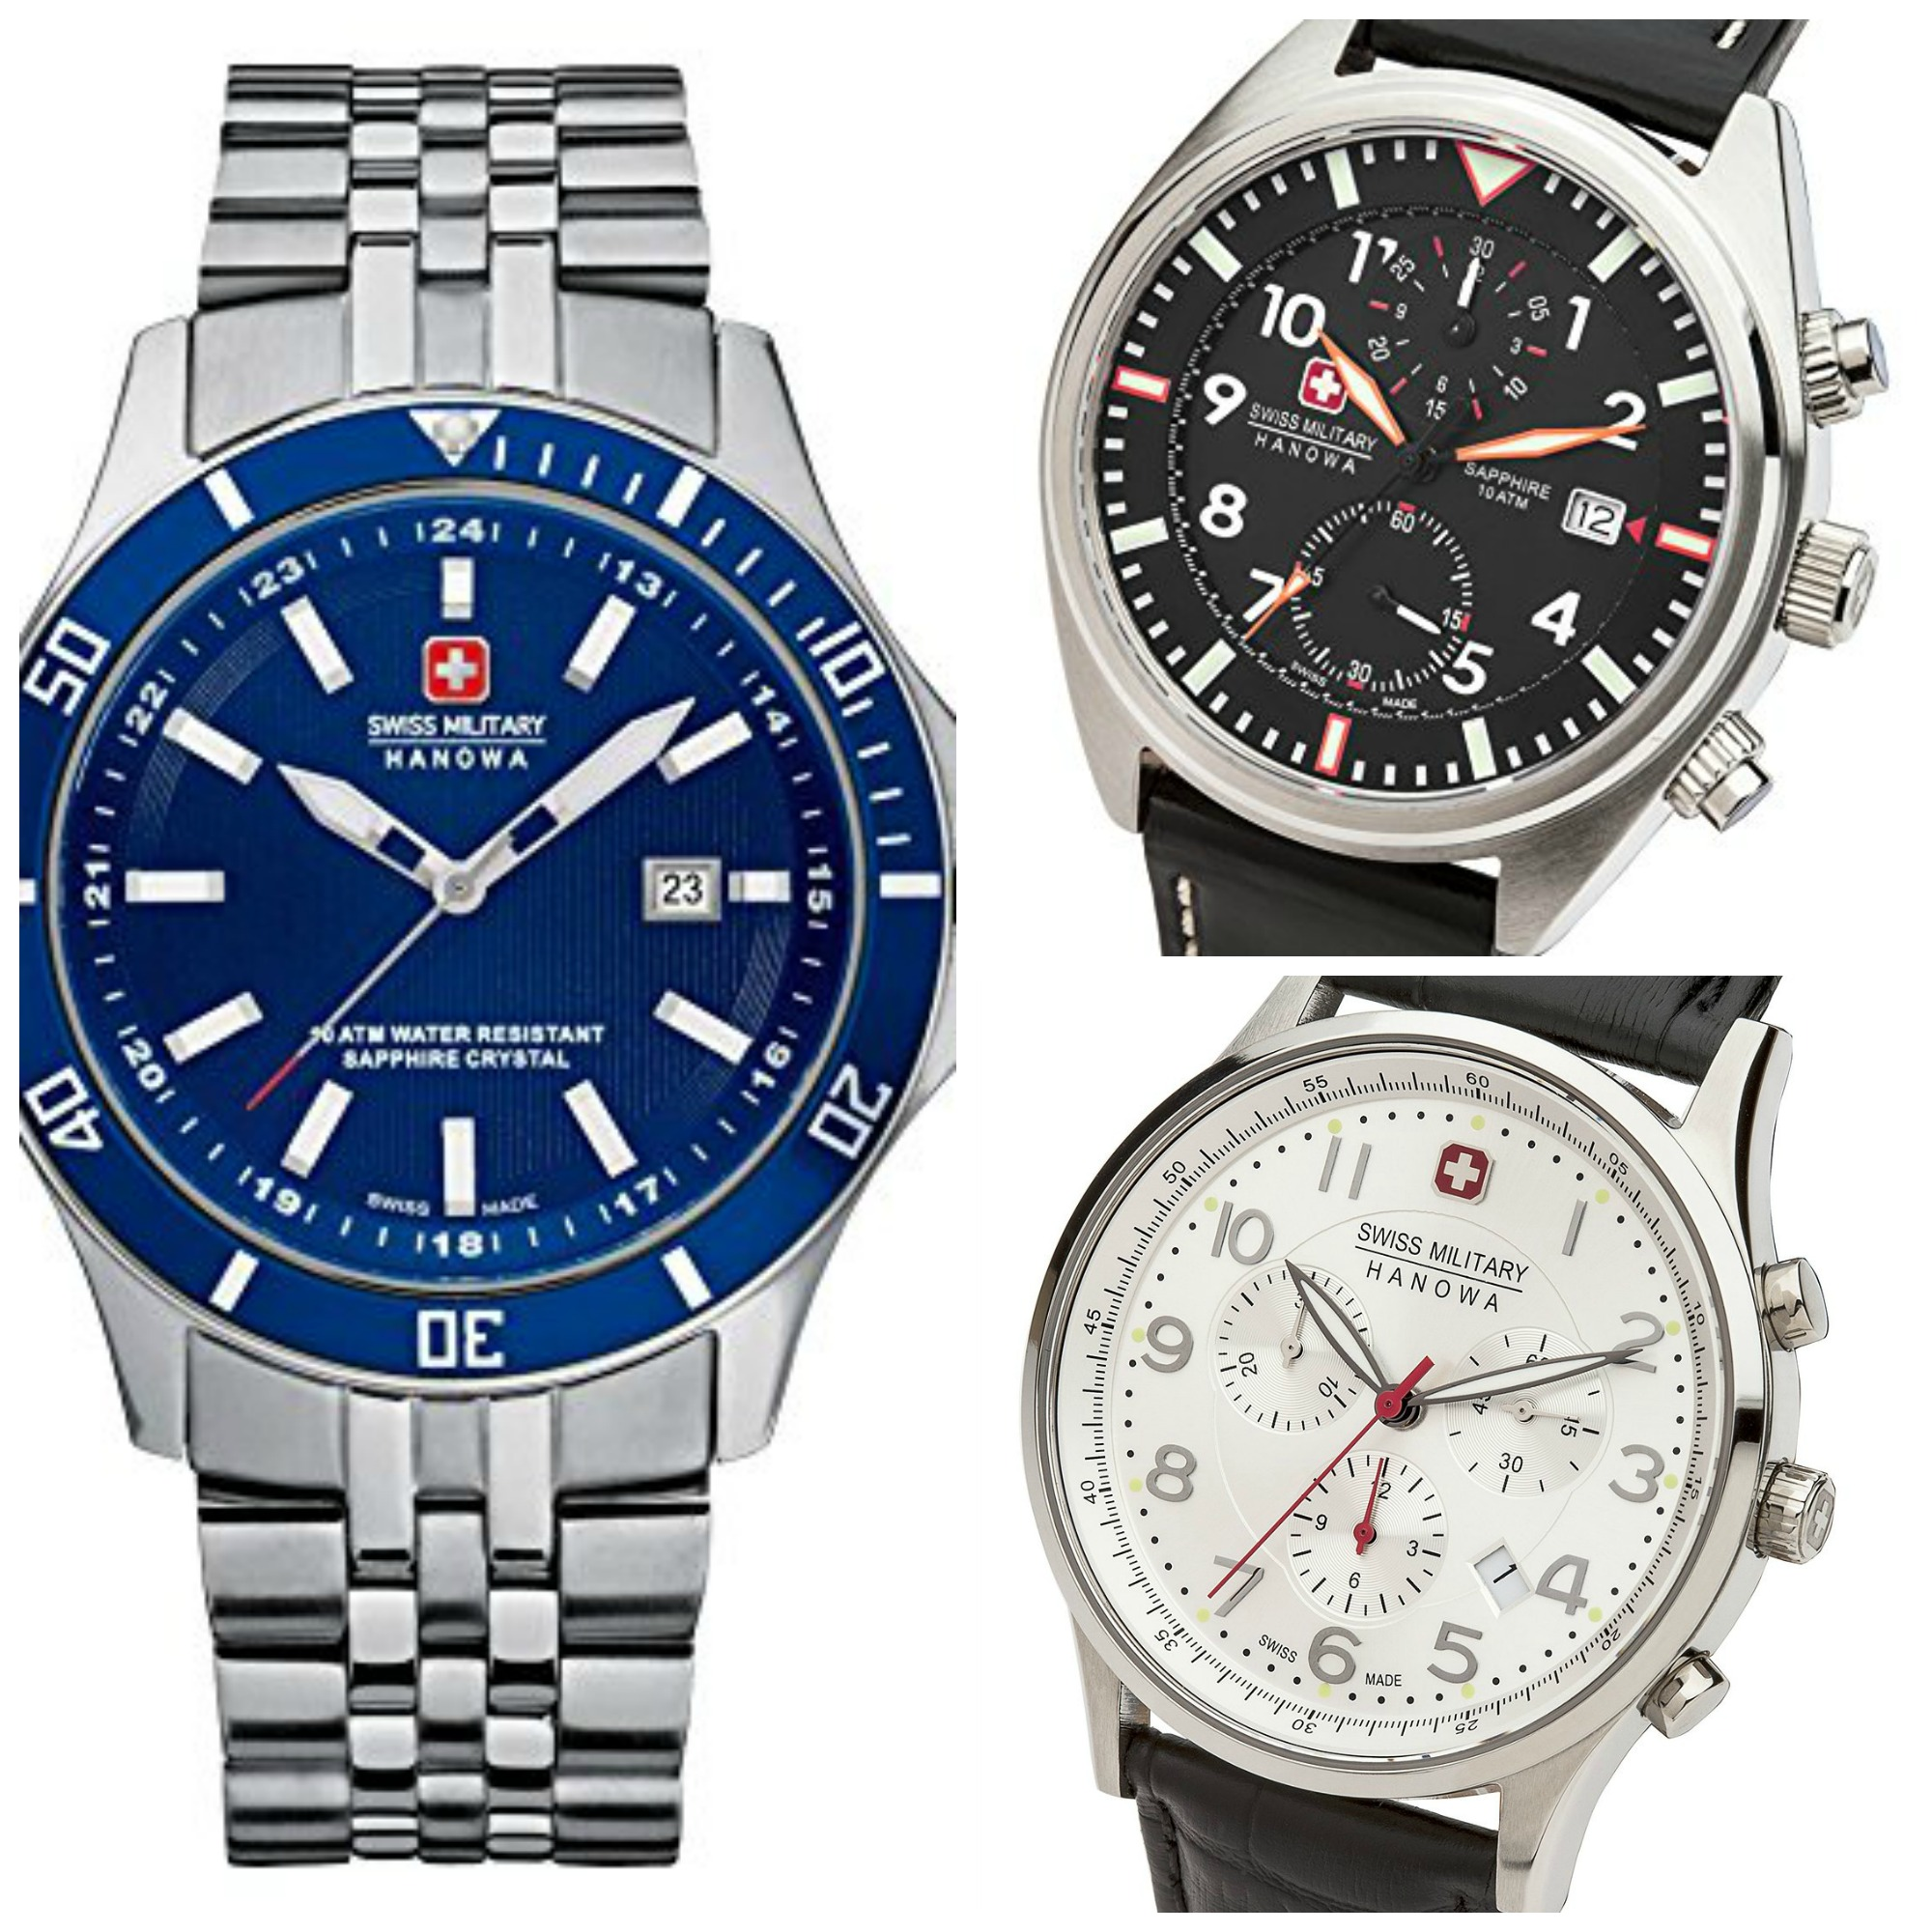 tim watches army watch lady swiss victorinox prevnext en maverick mechanical